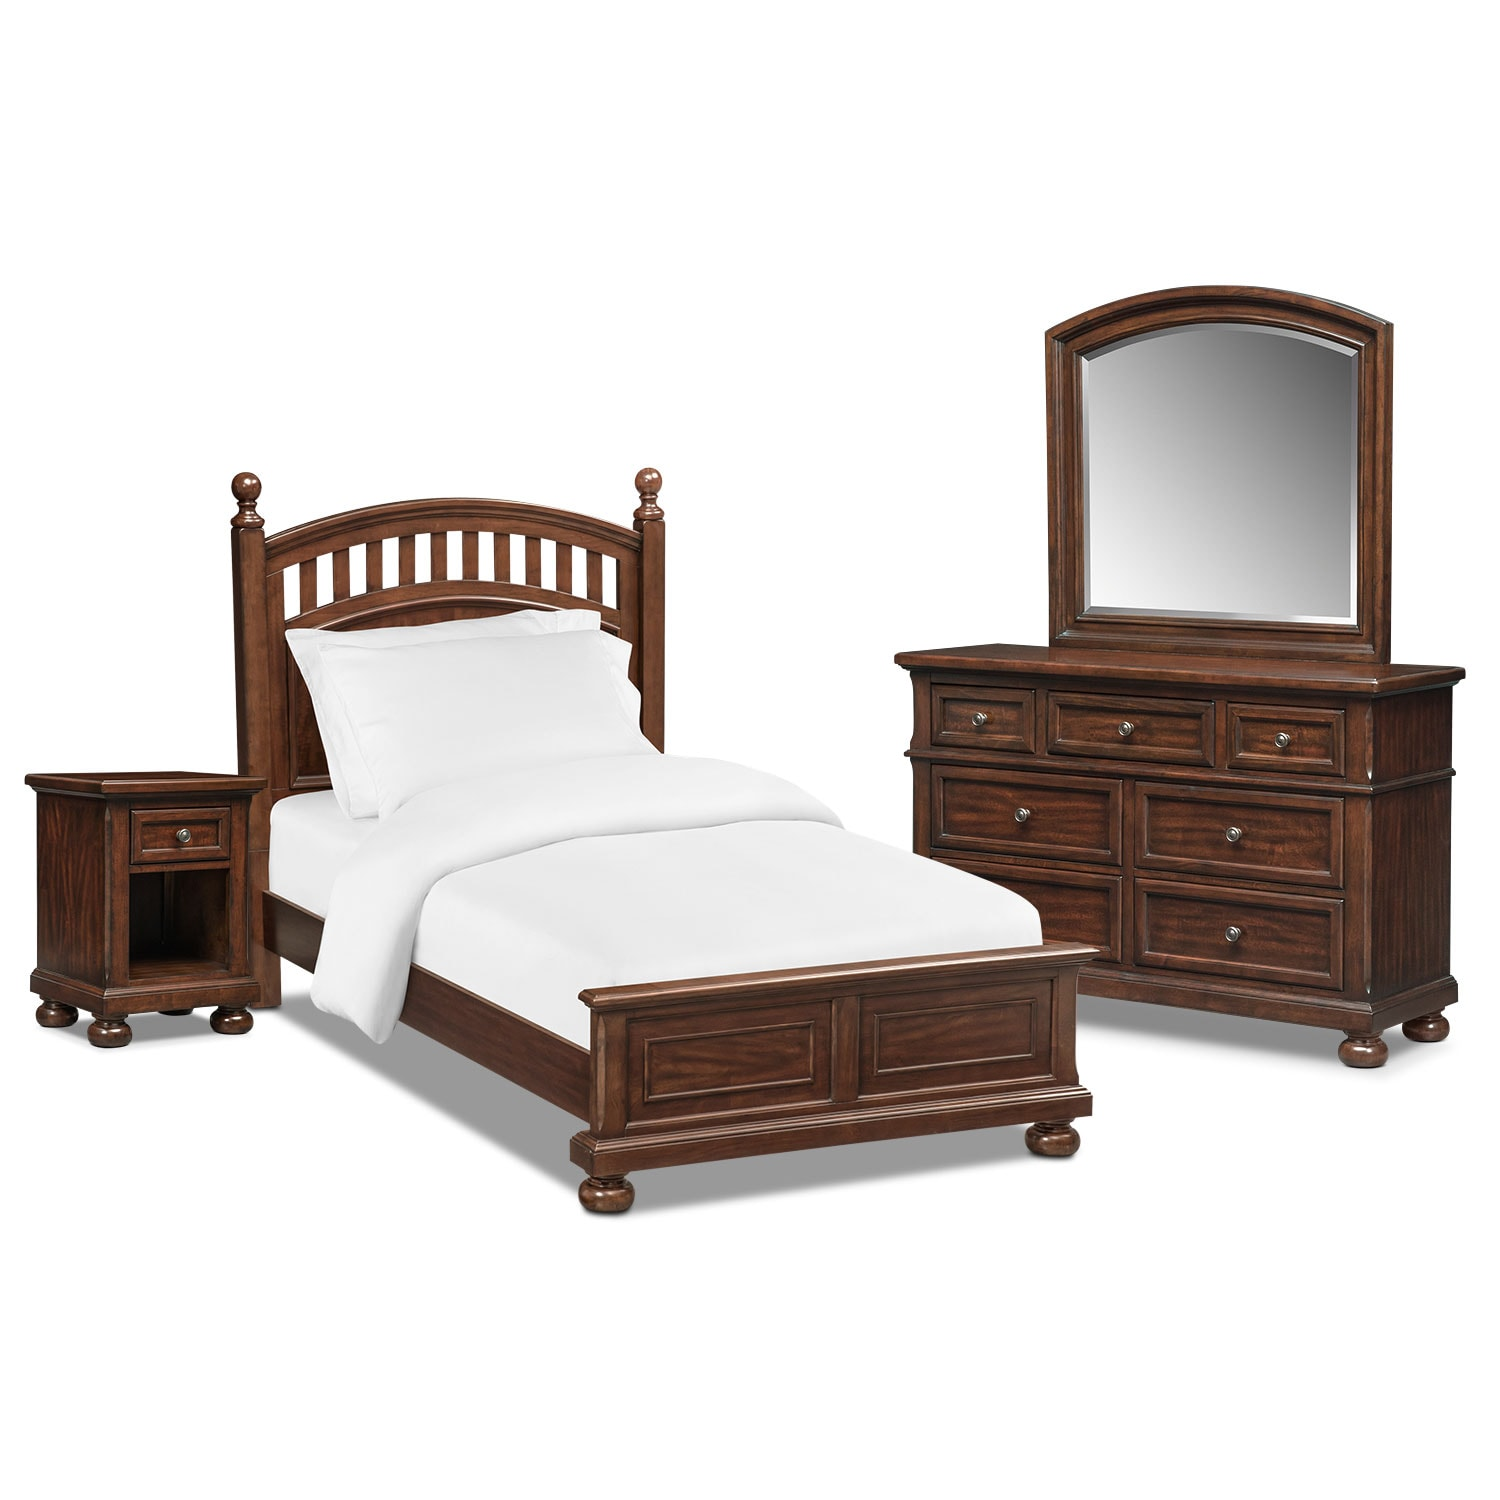 Hanover Youth 5 Piece Full Sleigh Bedroom Set With Storage Cherry Value City Furniture